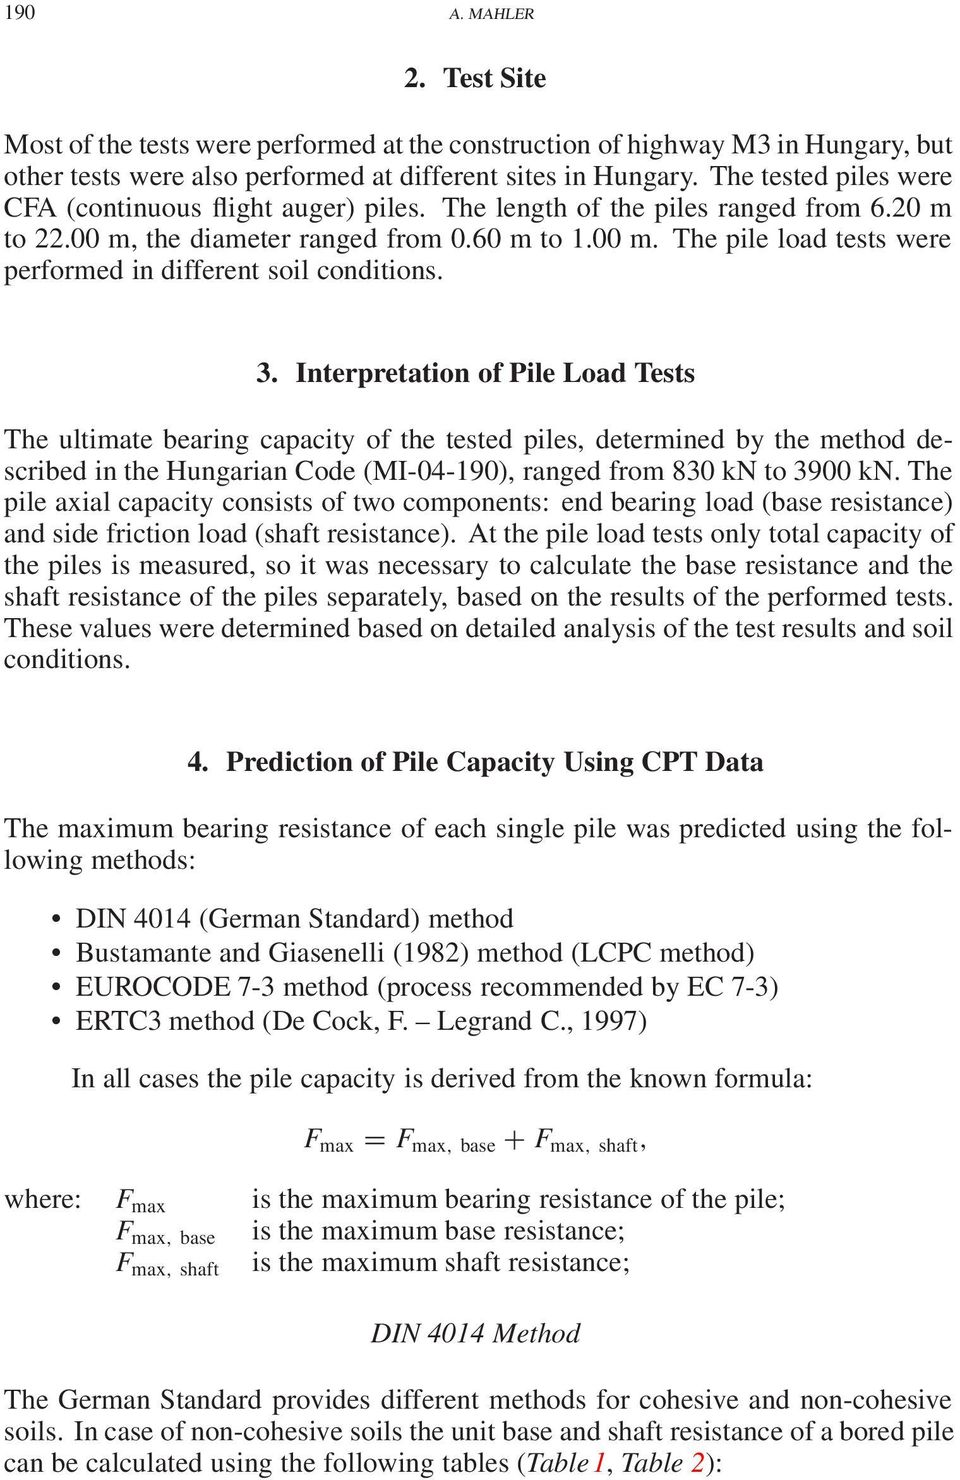 3. Interpretation of Pile Load Tests The ultimate bearing capacity of the tested piles, determined by the method described in the Hungarian Code (MI-4-19), ranged from 83 kn to 39 kn.